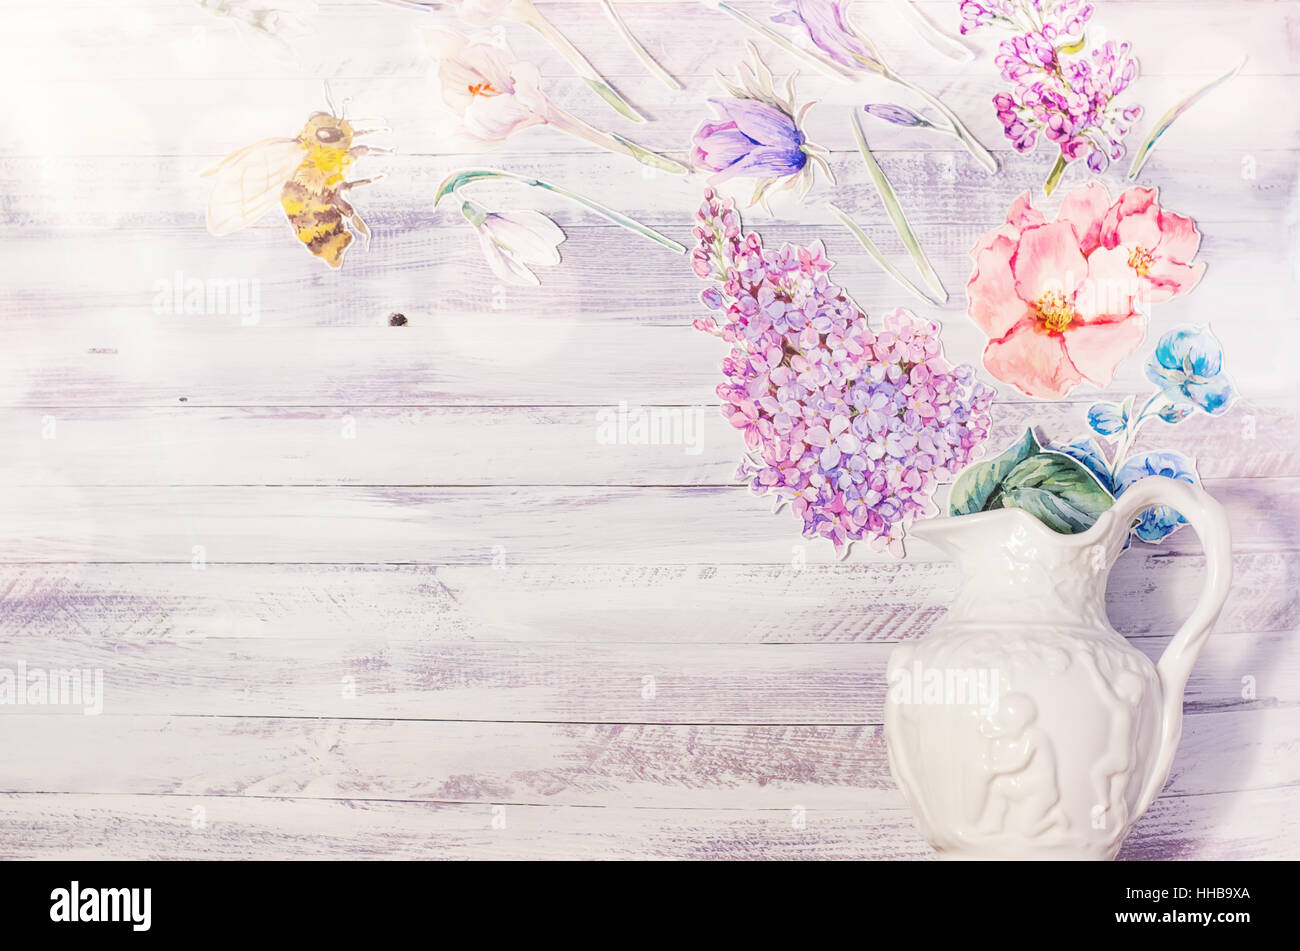 Spring Floral Decoration With Watercolor Paper Purple Flowers On A